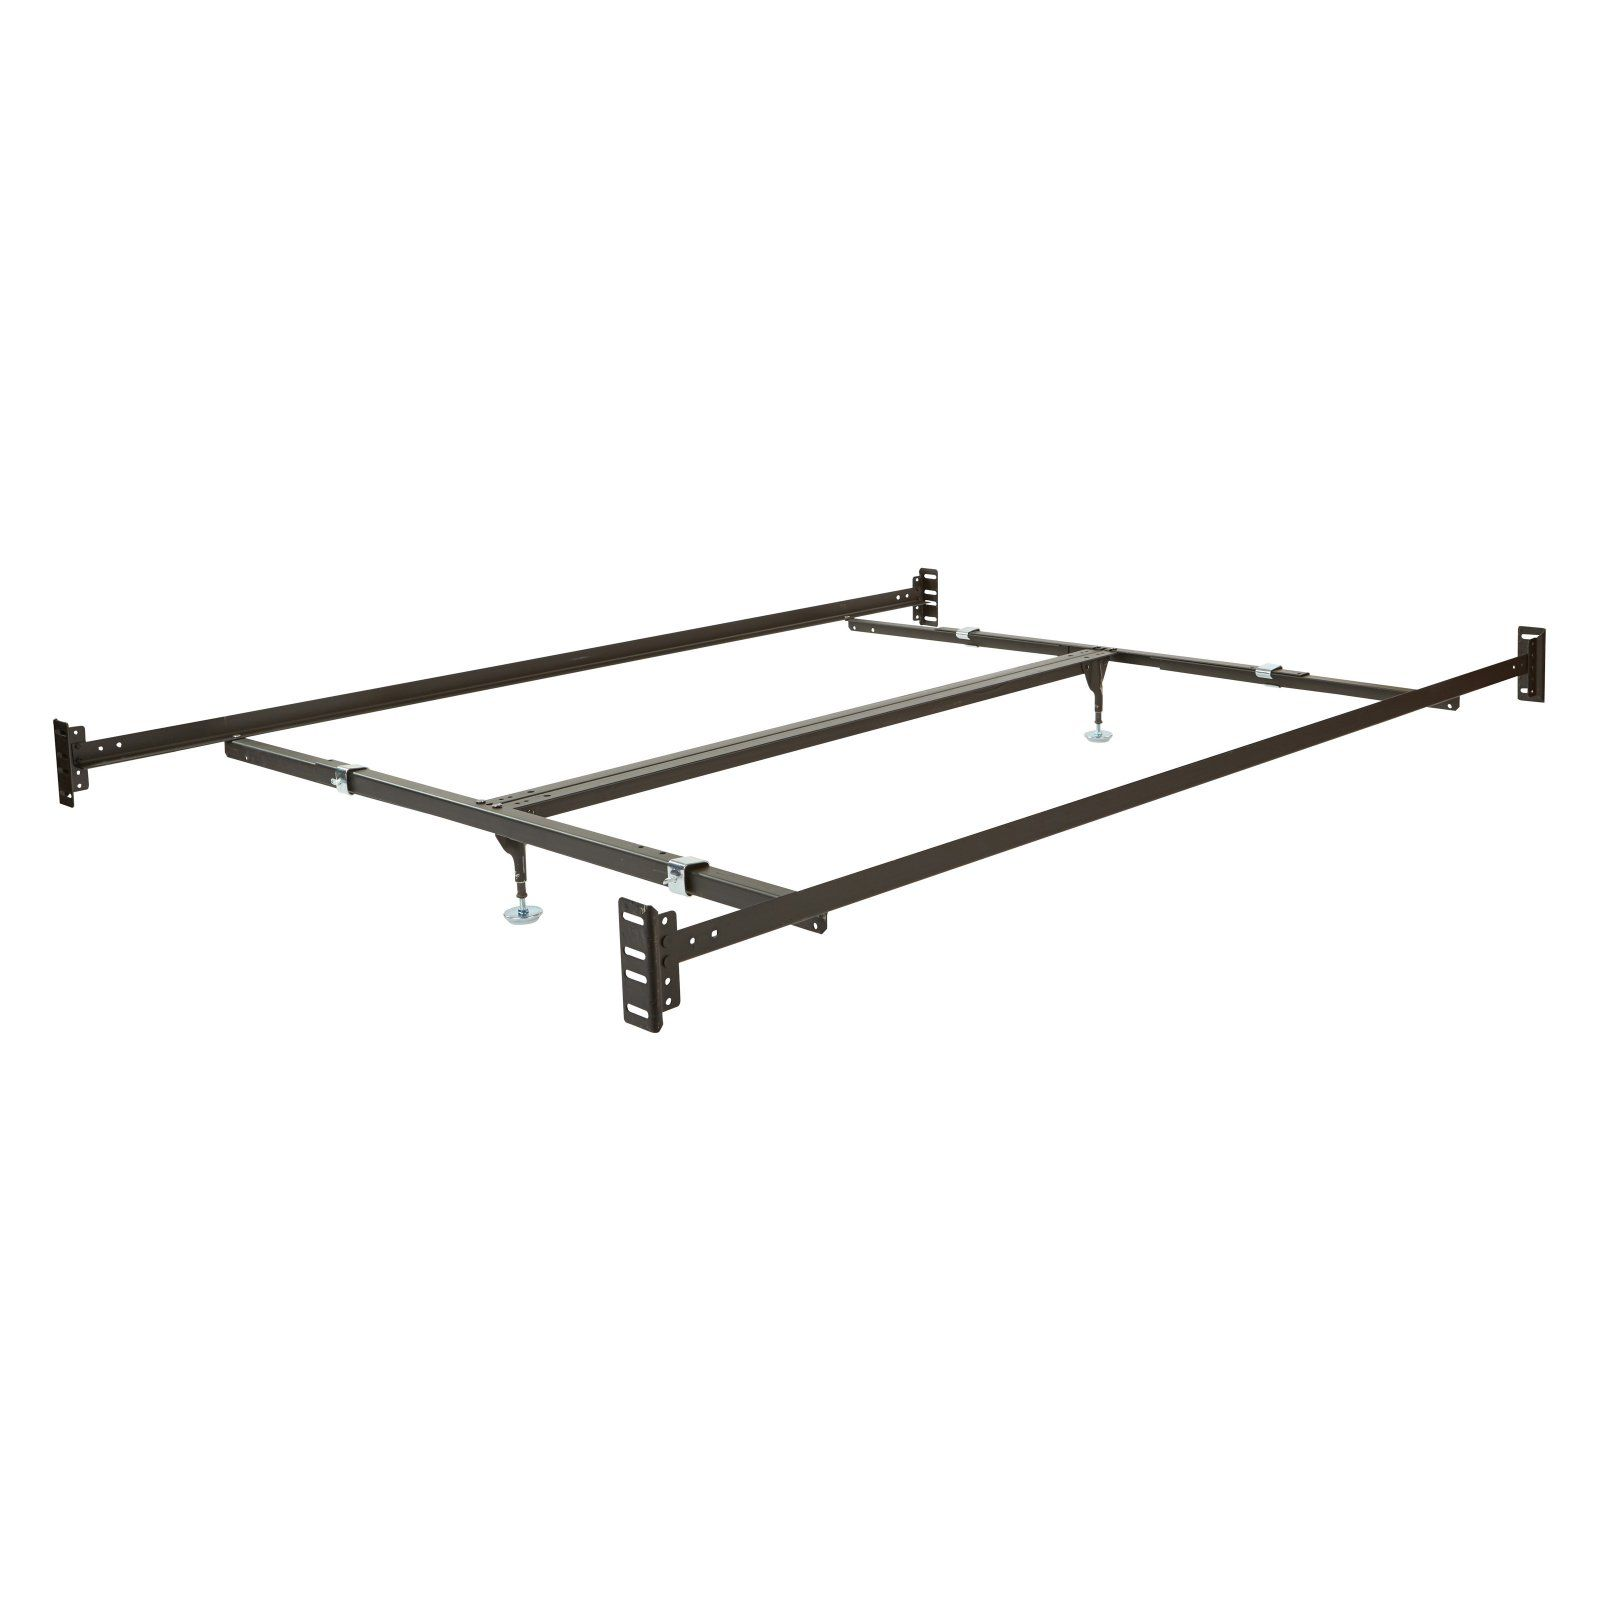 Ospd Queen Bed Rails Products In 2019 Queen Bed Rails Bed